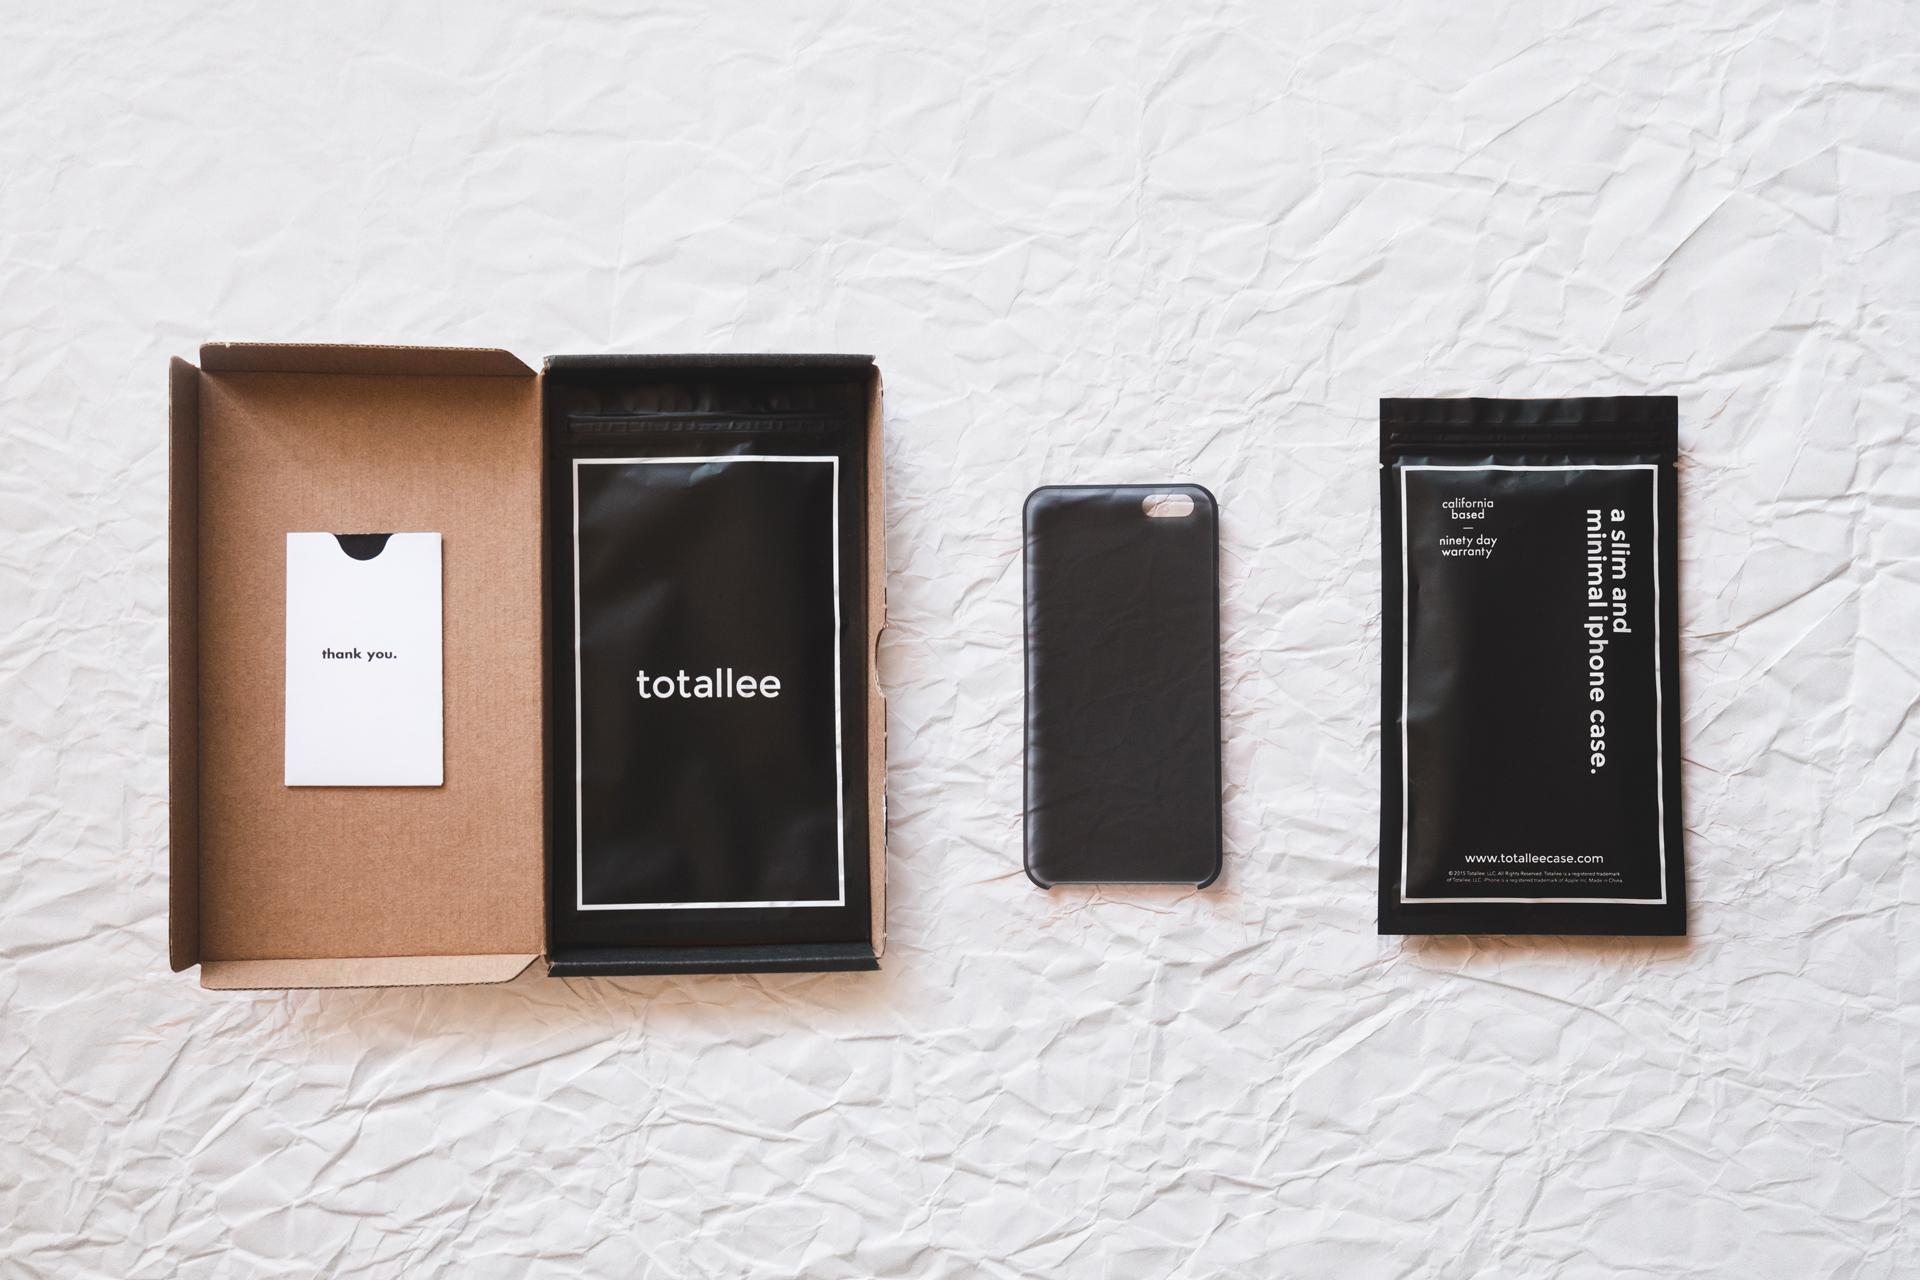 totallee-scarf-iphone-case-packaging